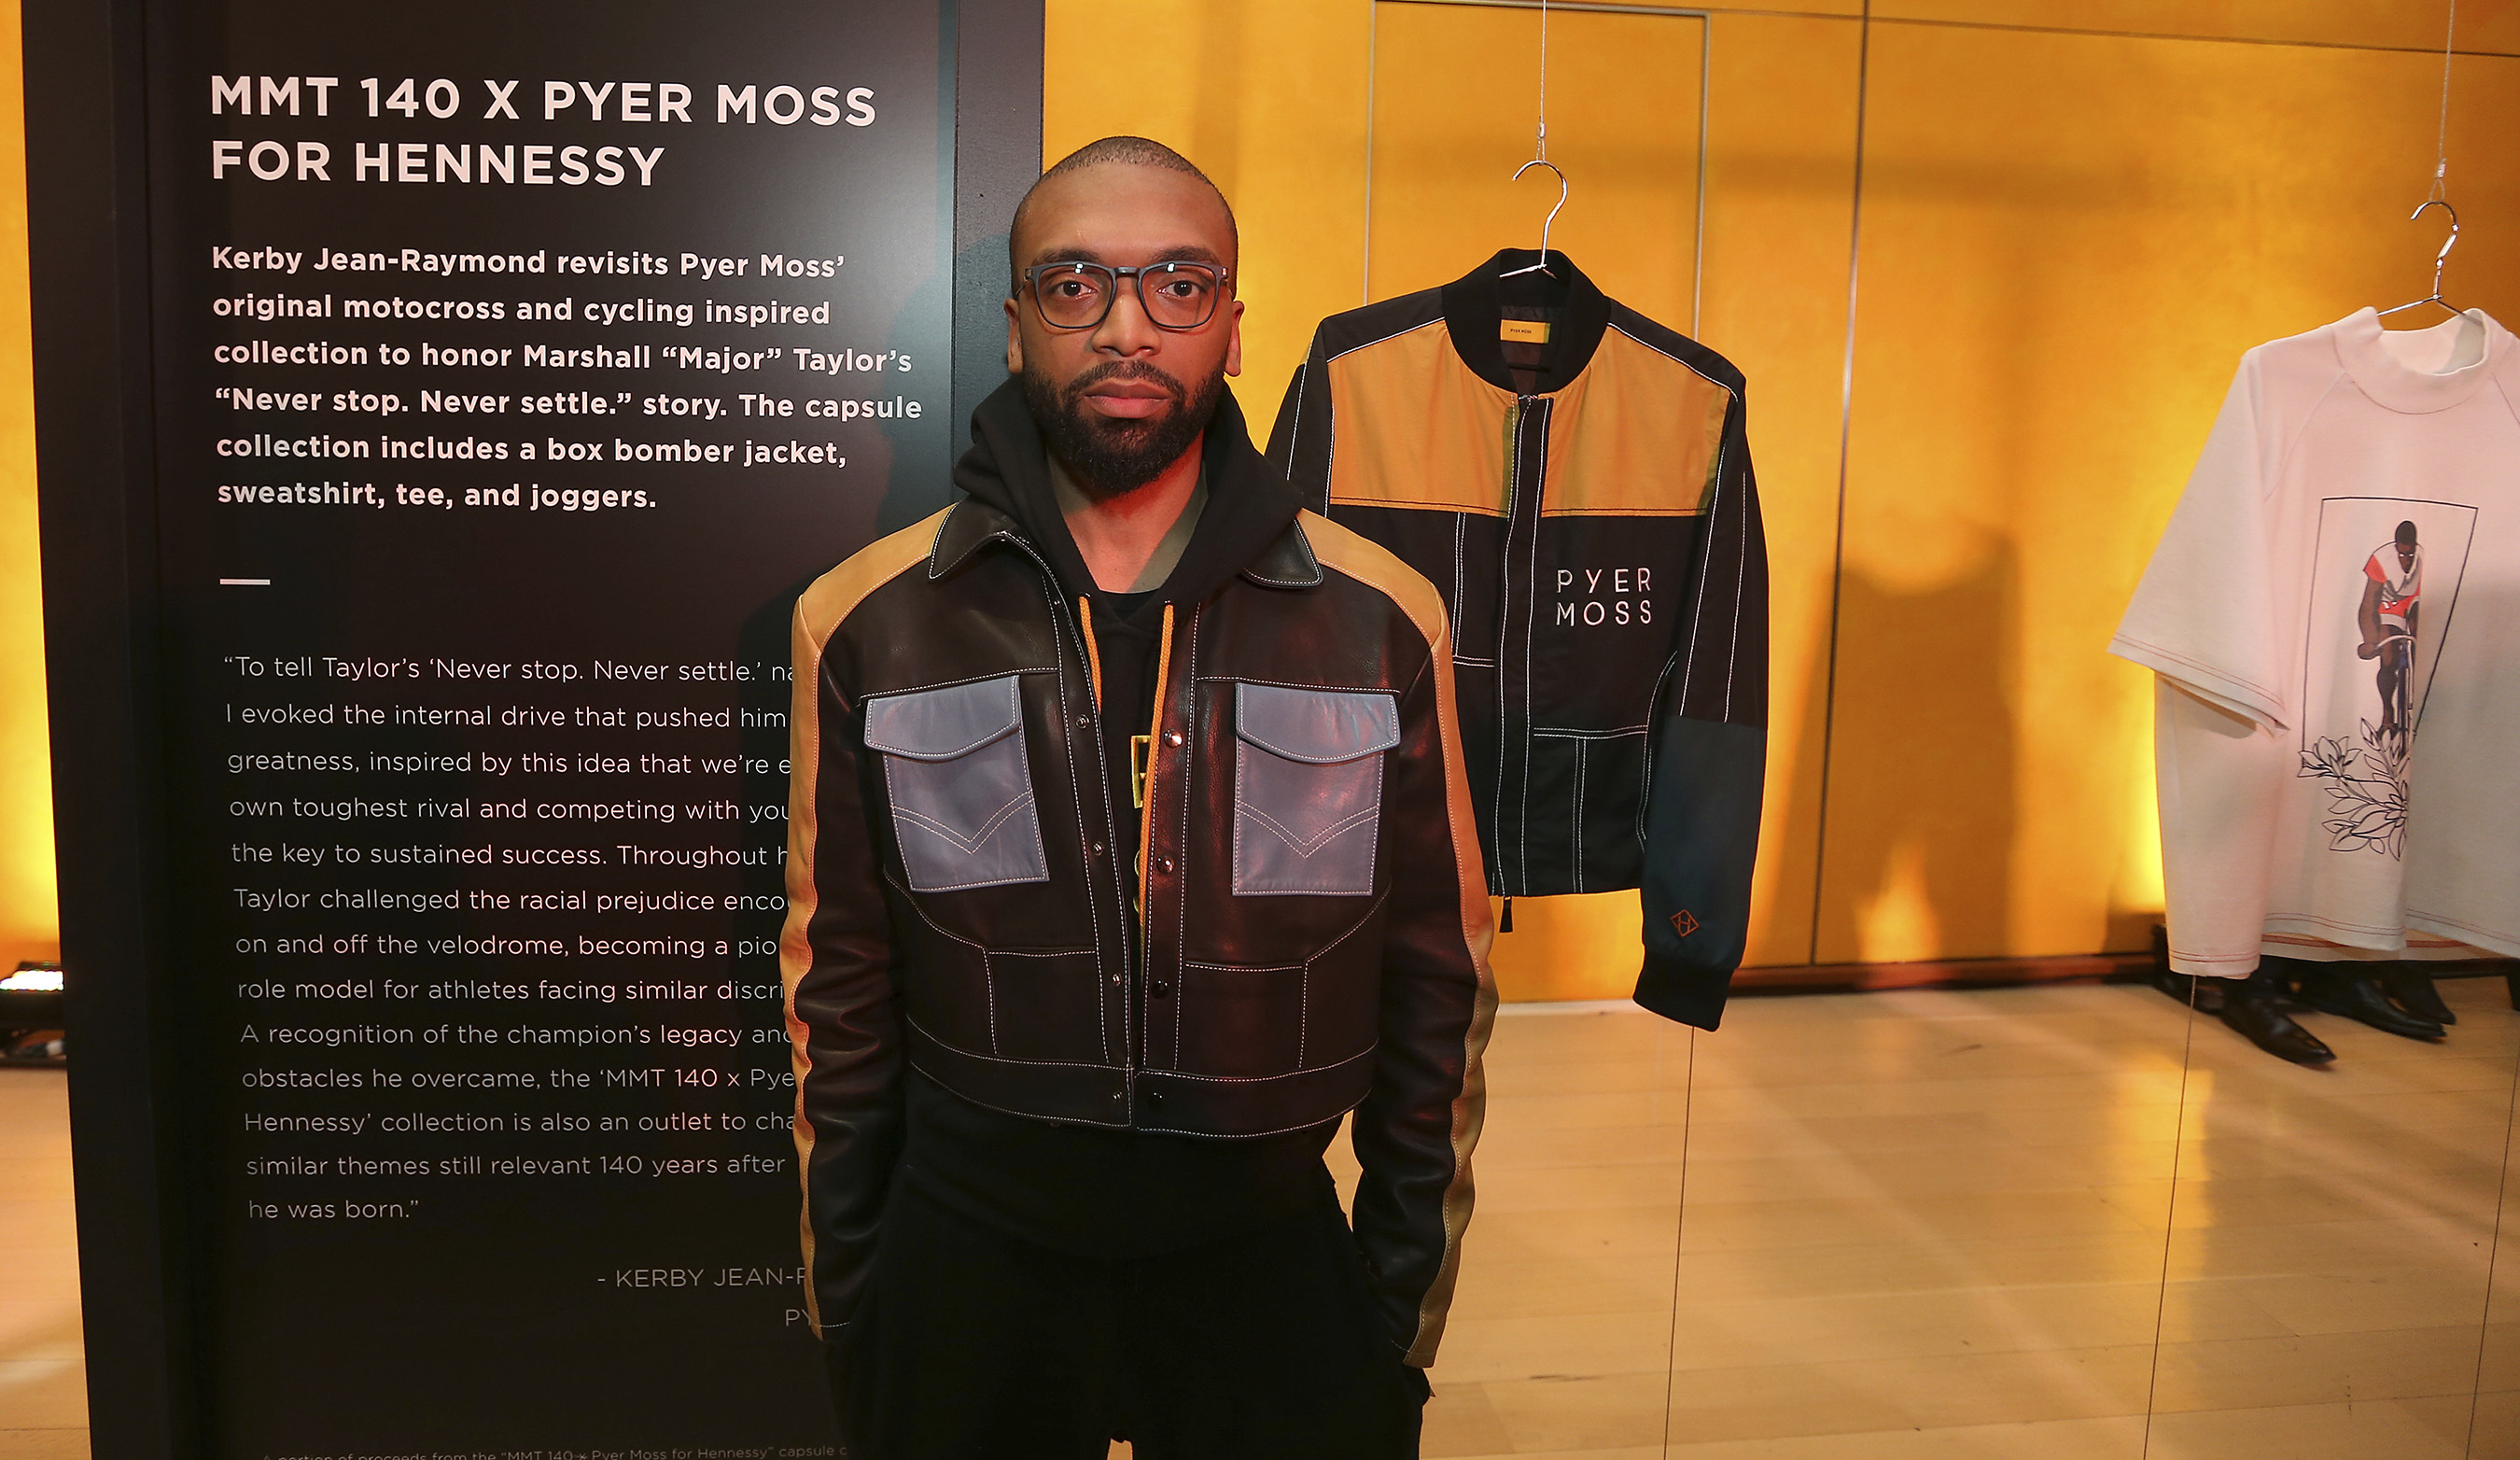 Designer Kerby Jean-Raymond of Pyer Moss captures themes of inner rivalry in a cycling-inspired capsule collection.